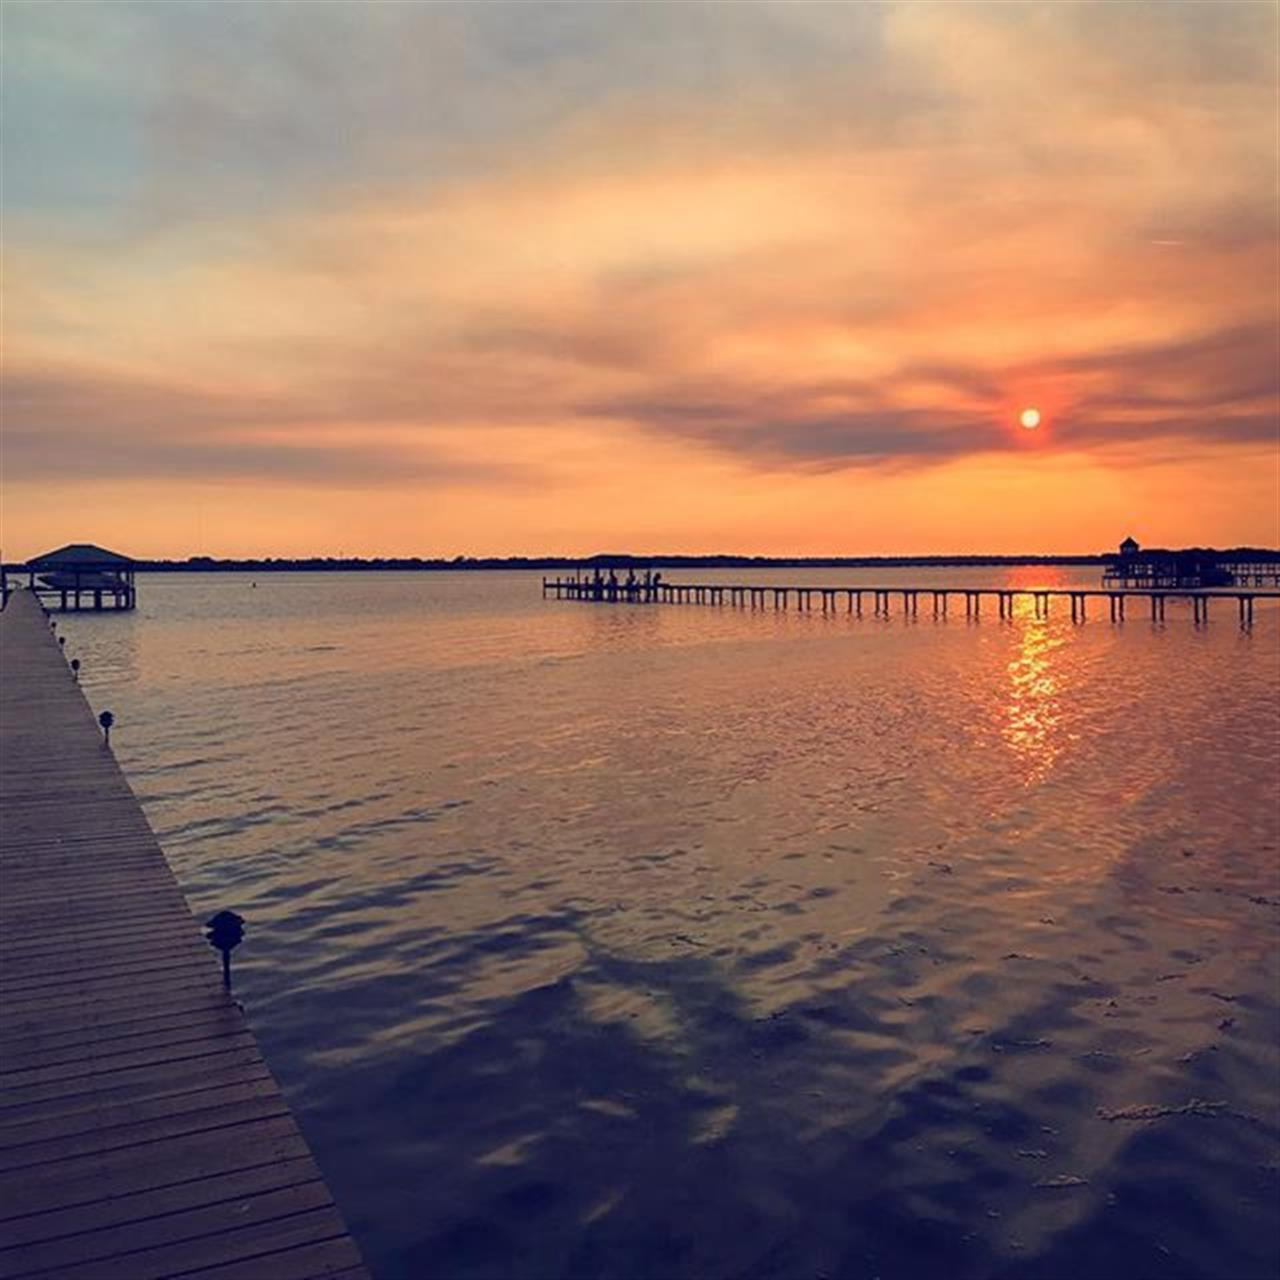 Last year Hurricane Matthew took out this dock and hurt the Jacksonville and surrounding areas. What doesn't kill you makes you stronger and what a special view to see after the rebuilding. #leadingrelocal #imlocalimglobal #leadingre #wearewatson #sunset #jacksonville #mandarin #hurricanematthew #rebuilds #stjohnsriver #calmafterthestorm #mandarin #jax